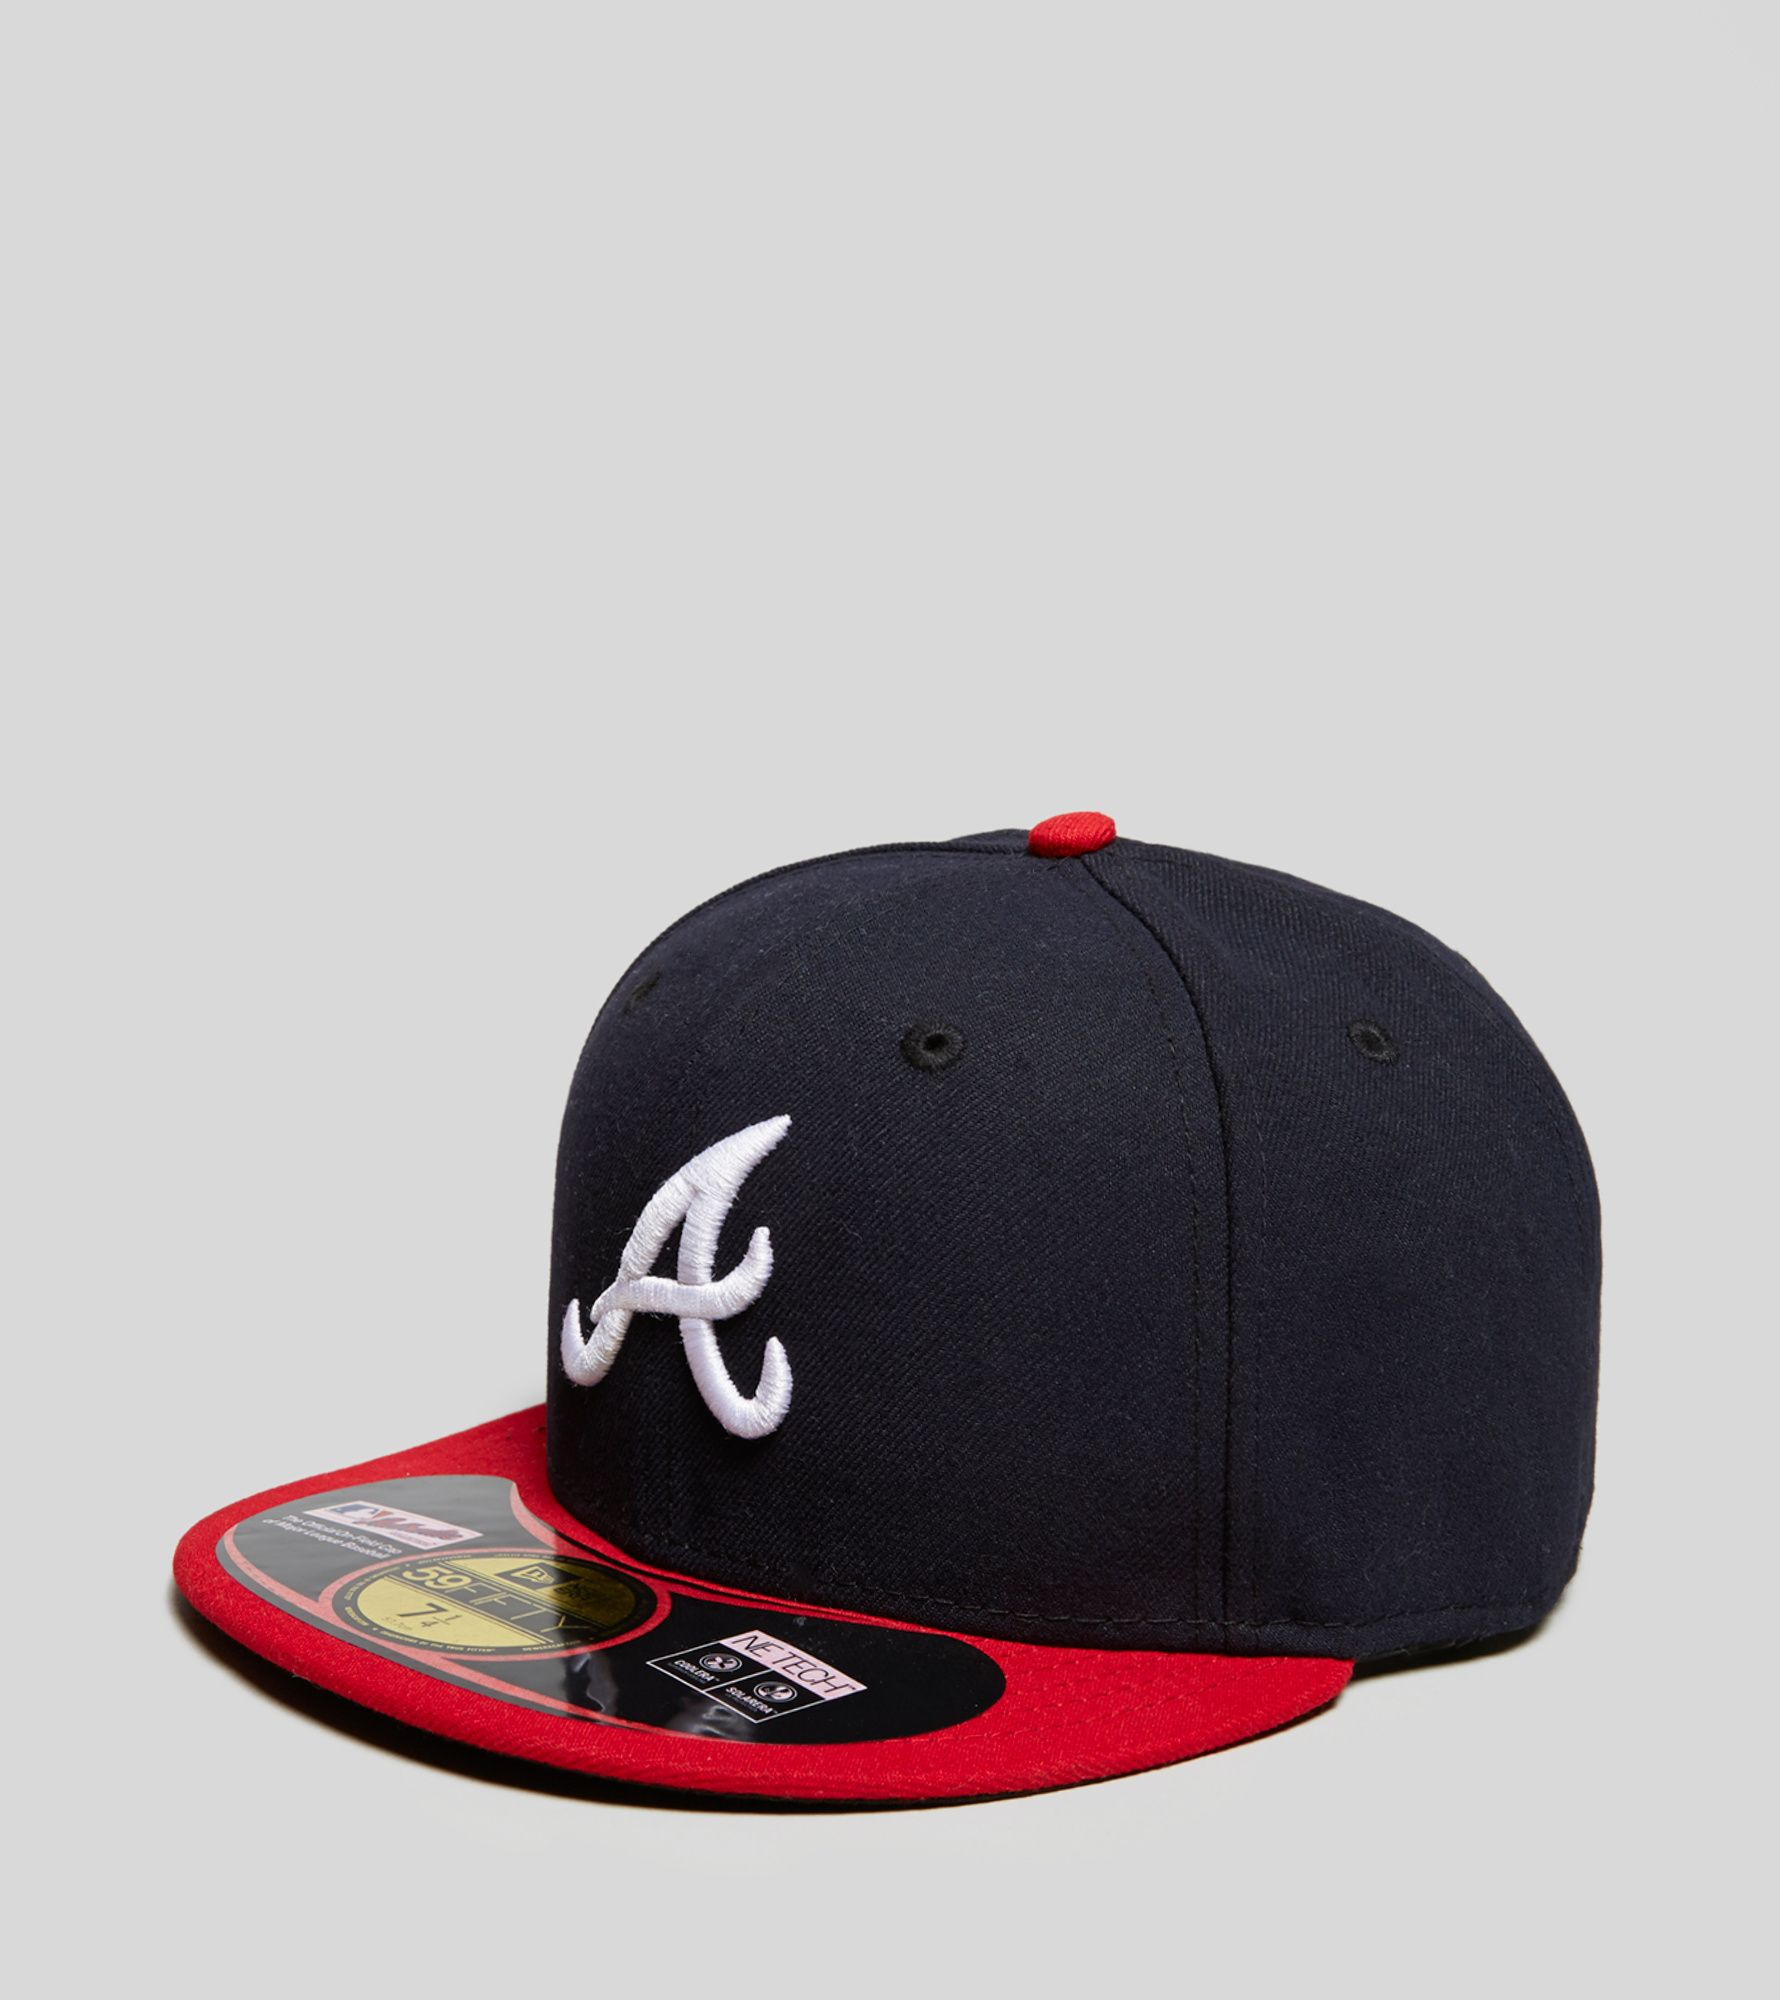 New Era Cap Discount Codes go to orimono.ga Total 19 active orimono.ga Promotion Codes & Deals are listed and the latest one is updated on December 04, ; 7 coupons and 12 deals which offer up to 50% Off, Free Shipping and extra discount, make sure to use one of them when you're shopping for orimono.ga; Dealscove promise.